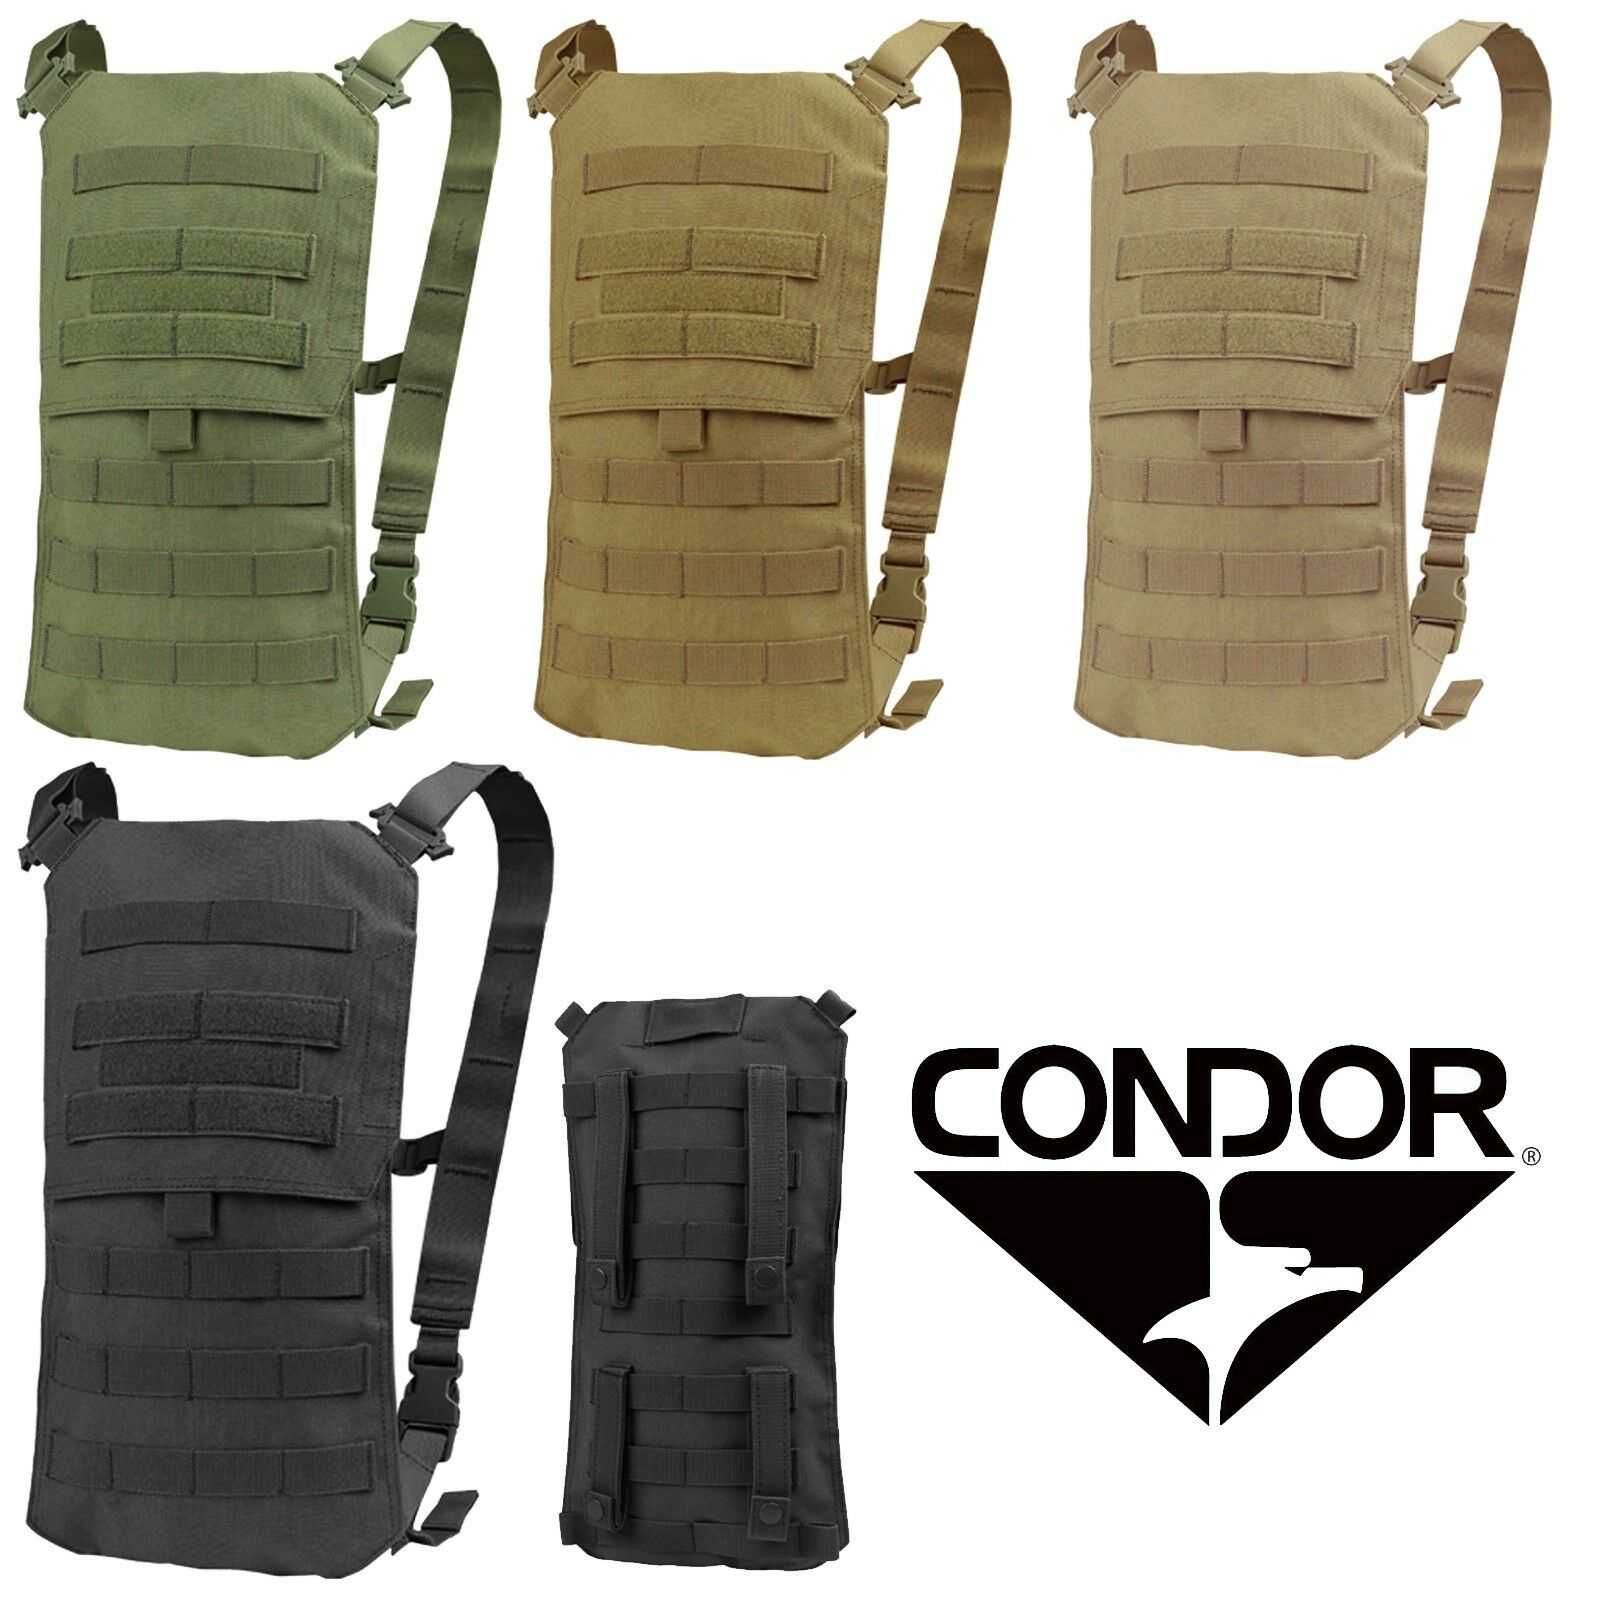 7ca18c01d8 Condor Modular MOLLE PALS Oasis Hydration Carrier Backpack and 2.5L Bladder  HCB3